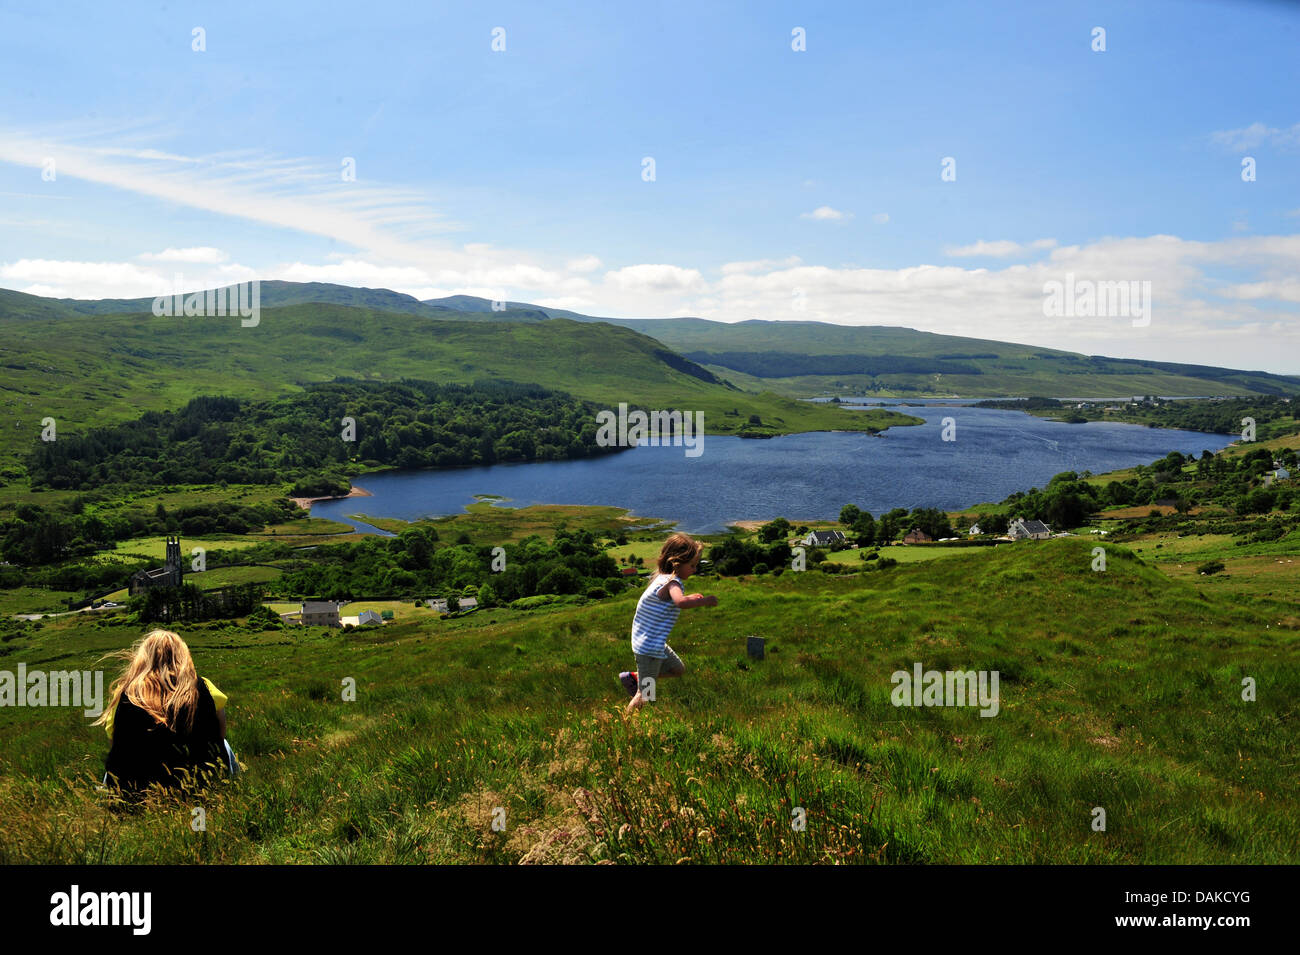 Dunlewey Church of Ireland, Poisoned Glen and Lough Na Kung,  County Donegal, Ireland. - Stock Image